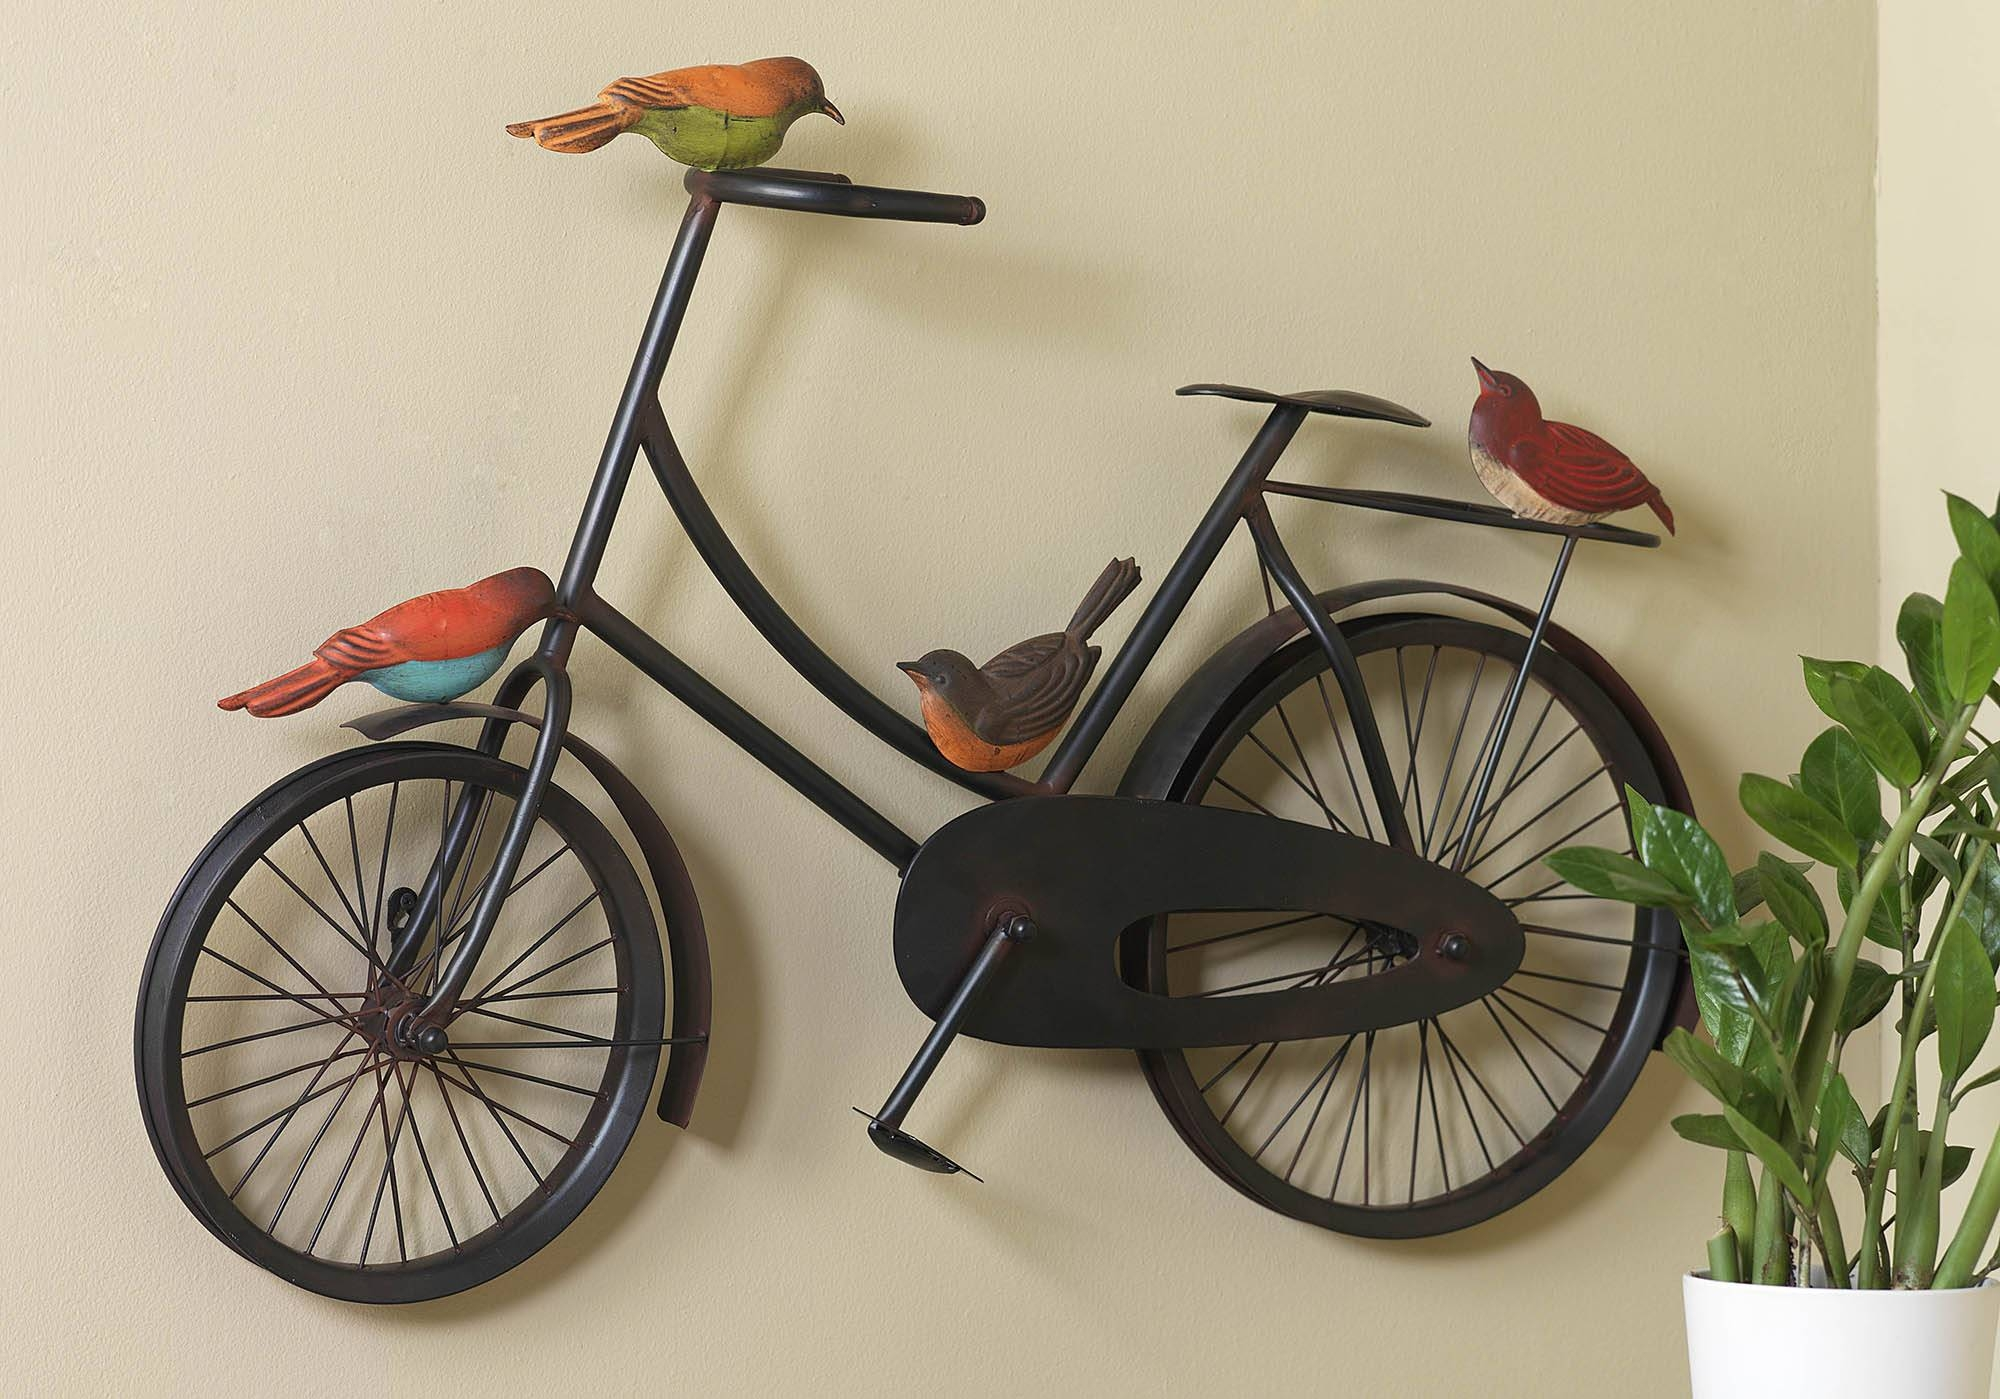 Glamorous 50+ Bicycle Wall Decor Inspiration Of Best 25+ Vintage Throughout Most Recent Bicycle Wall Art Decor (Gallery 5 of 20)